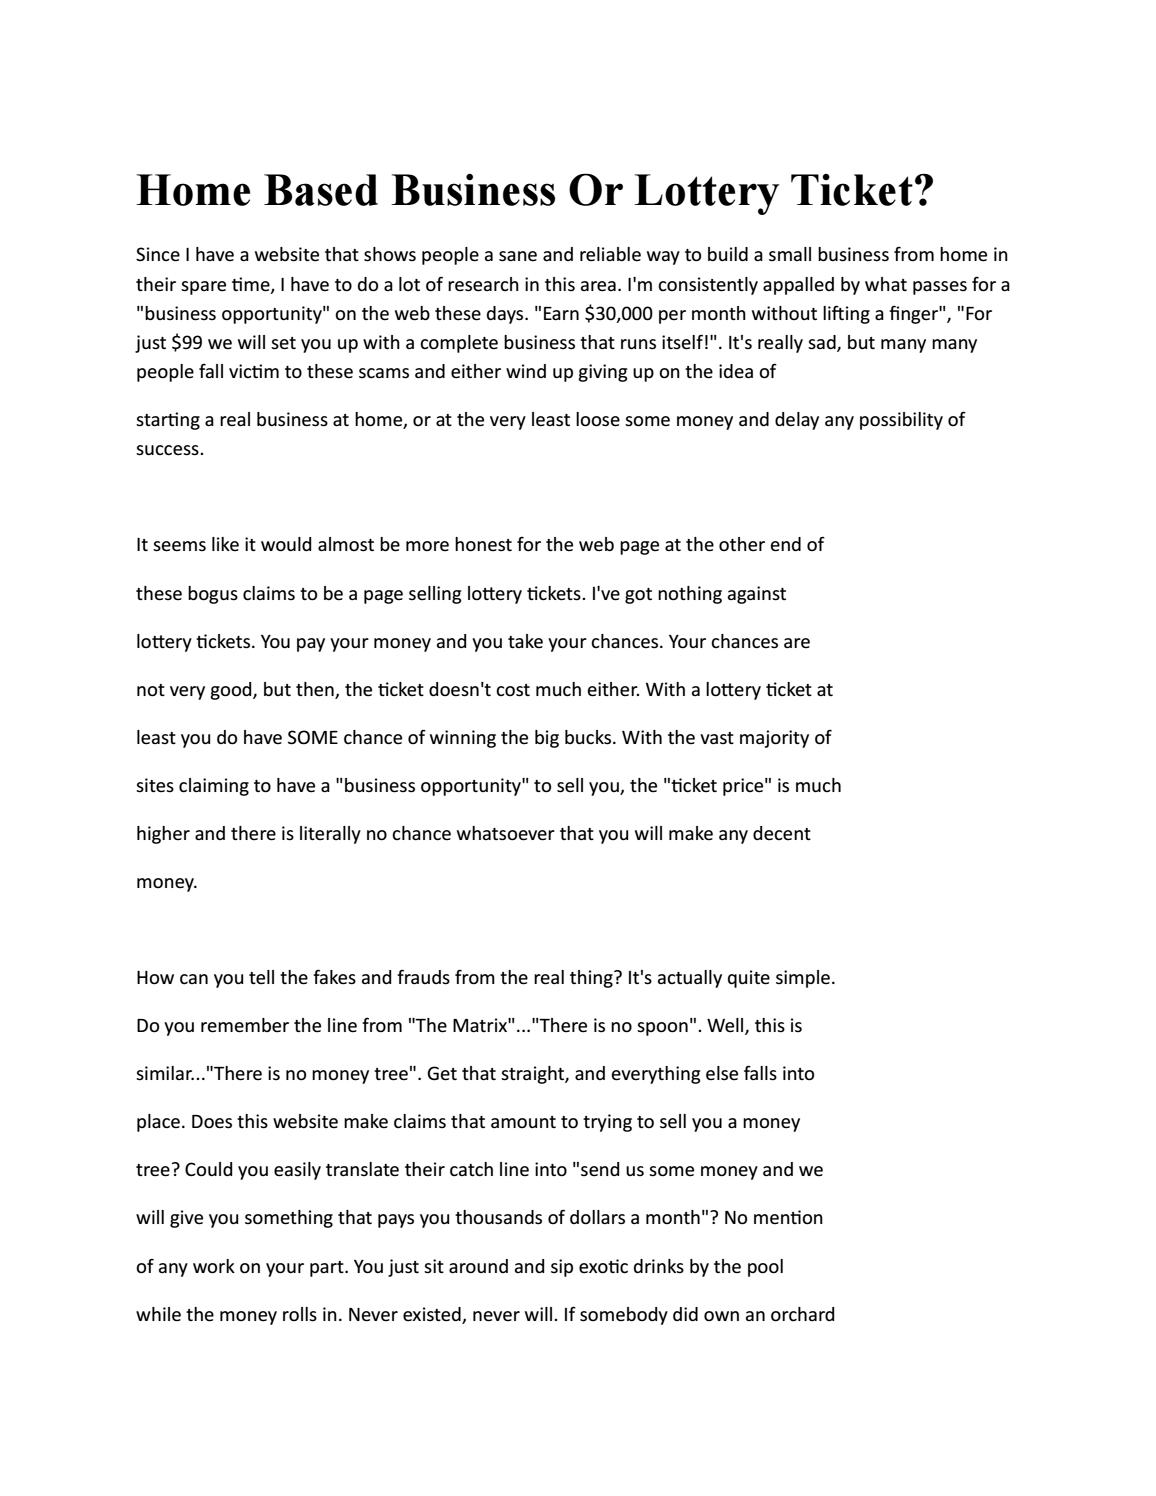 Home based business or lottery ticket by Shanna Phillips - issuu